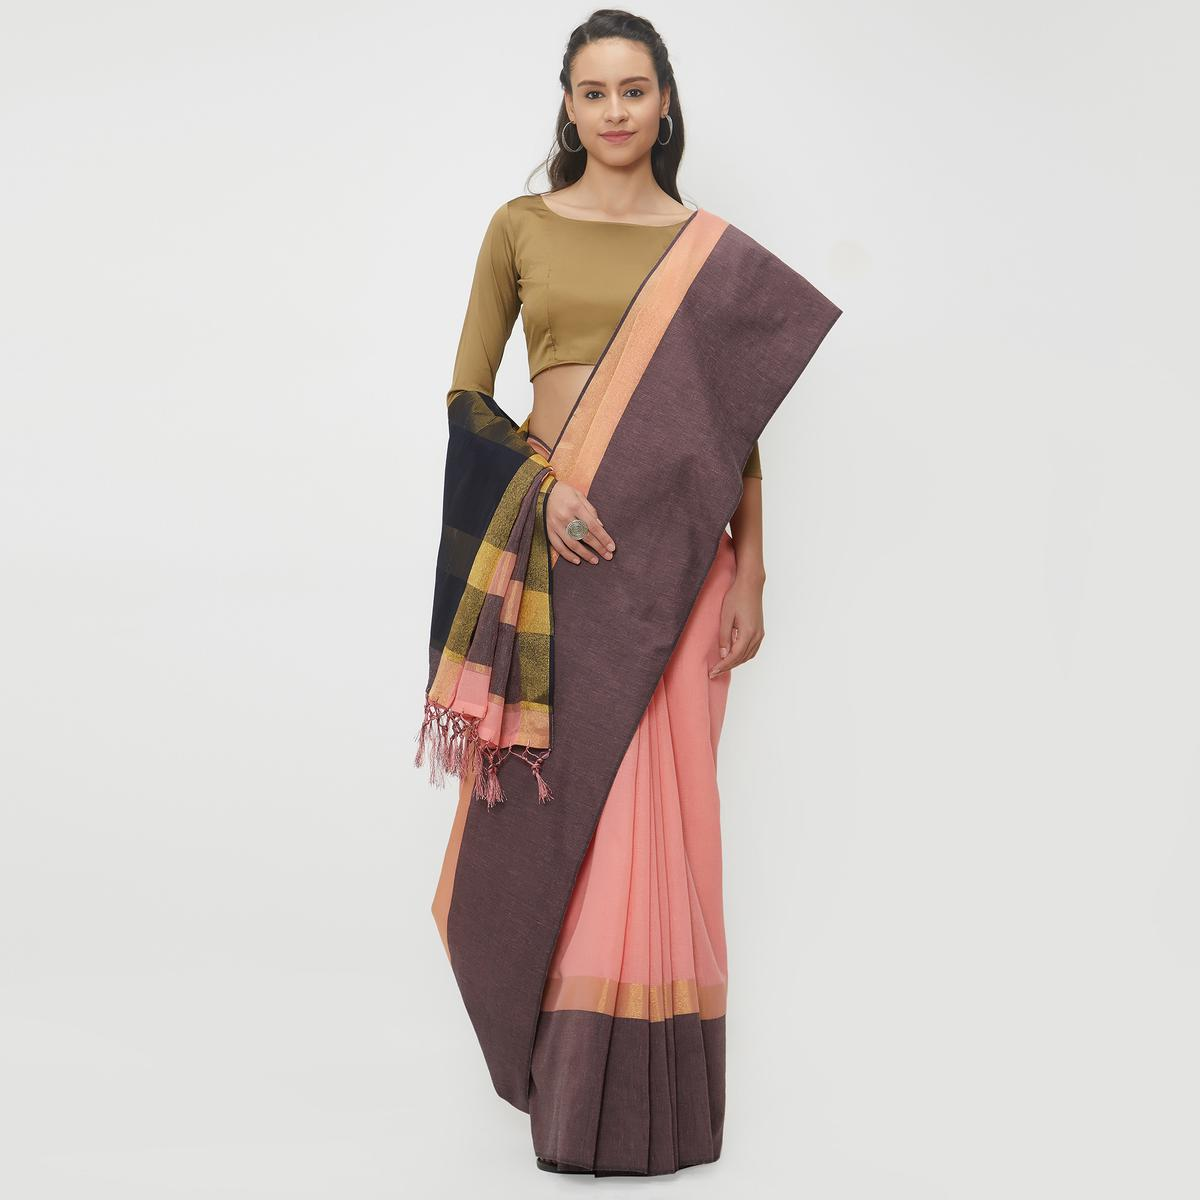 Gripping Peach Colored Casual Wear Linen Saree With 2 Blouse Pieces